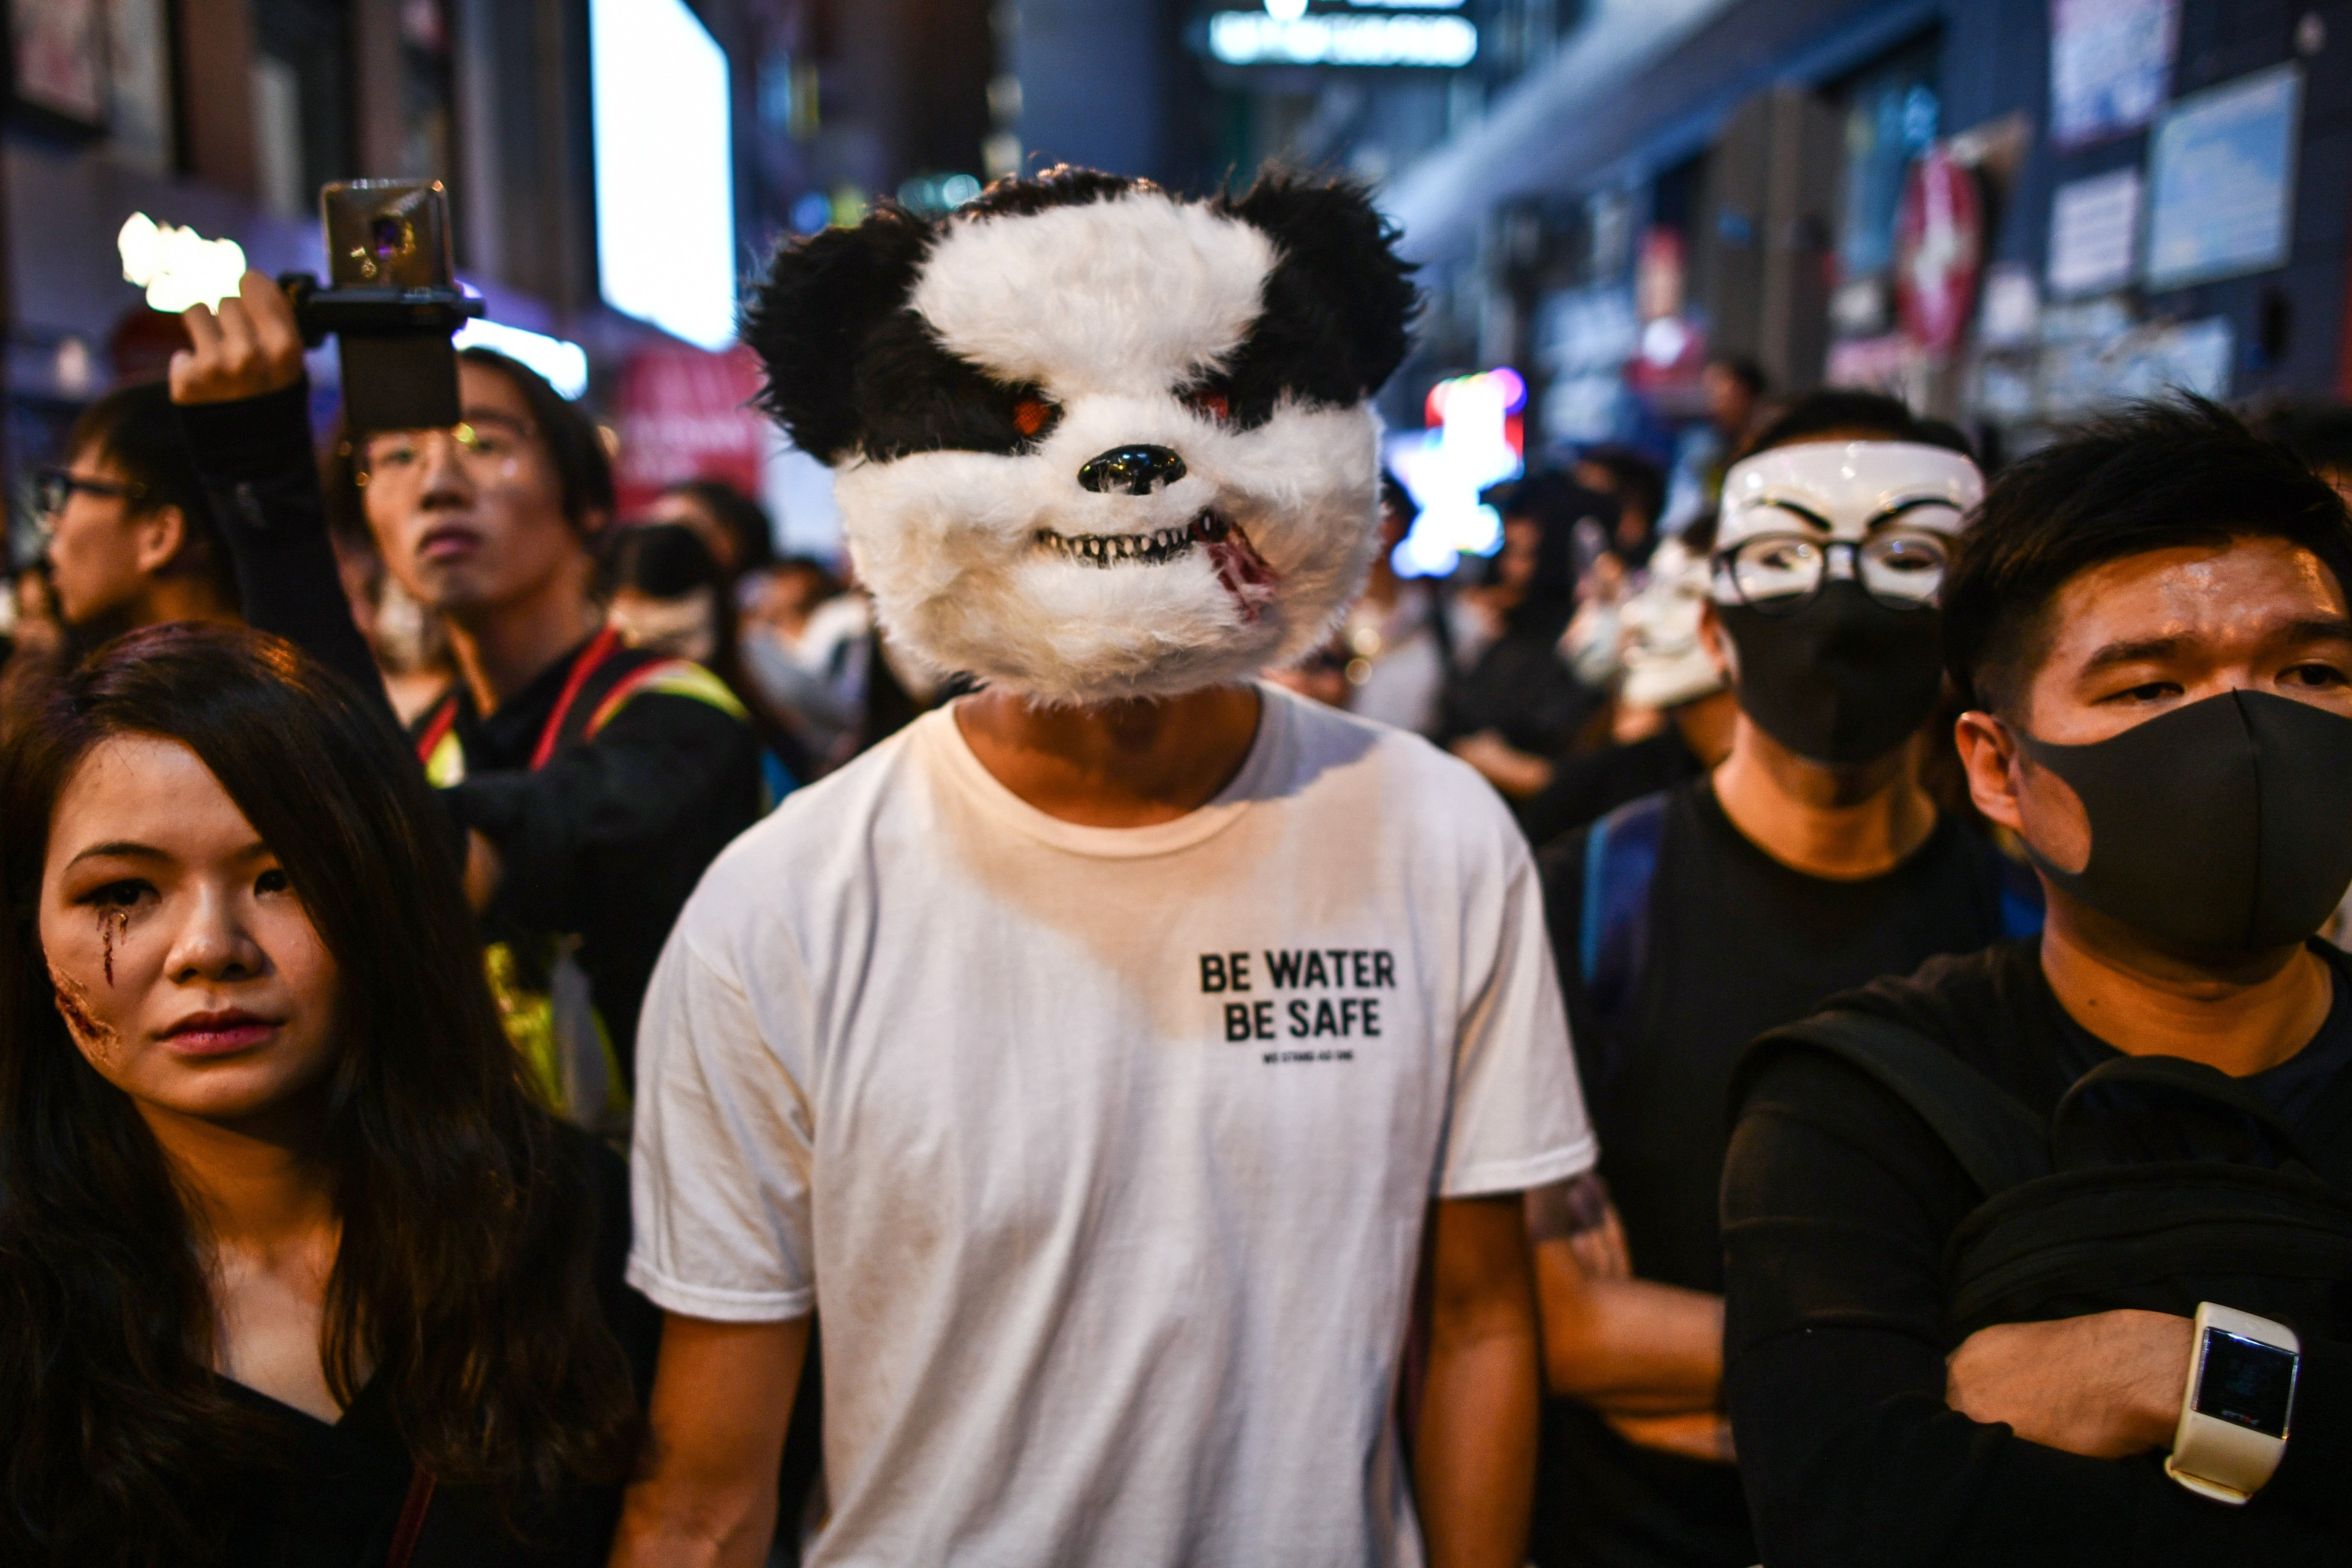 People shout slogans in front of a line of policemen in the Lan Kwai Fong area during Halloween in Hong Kong.